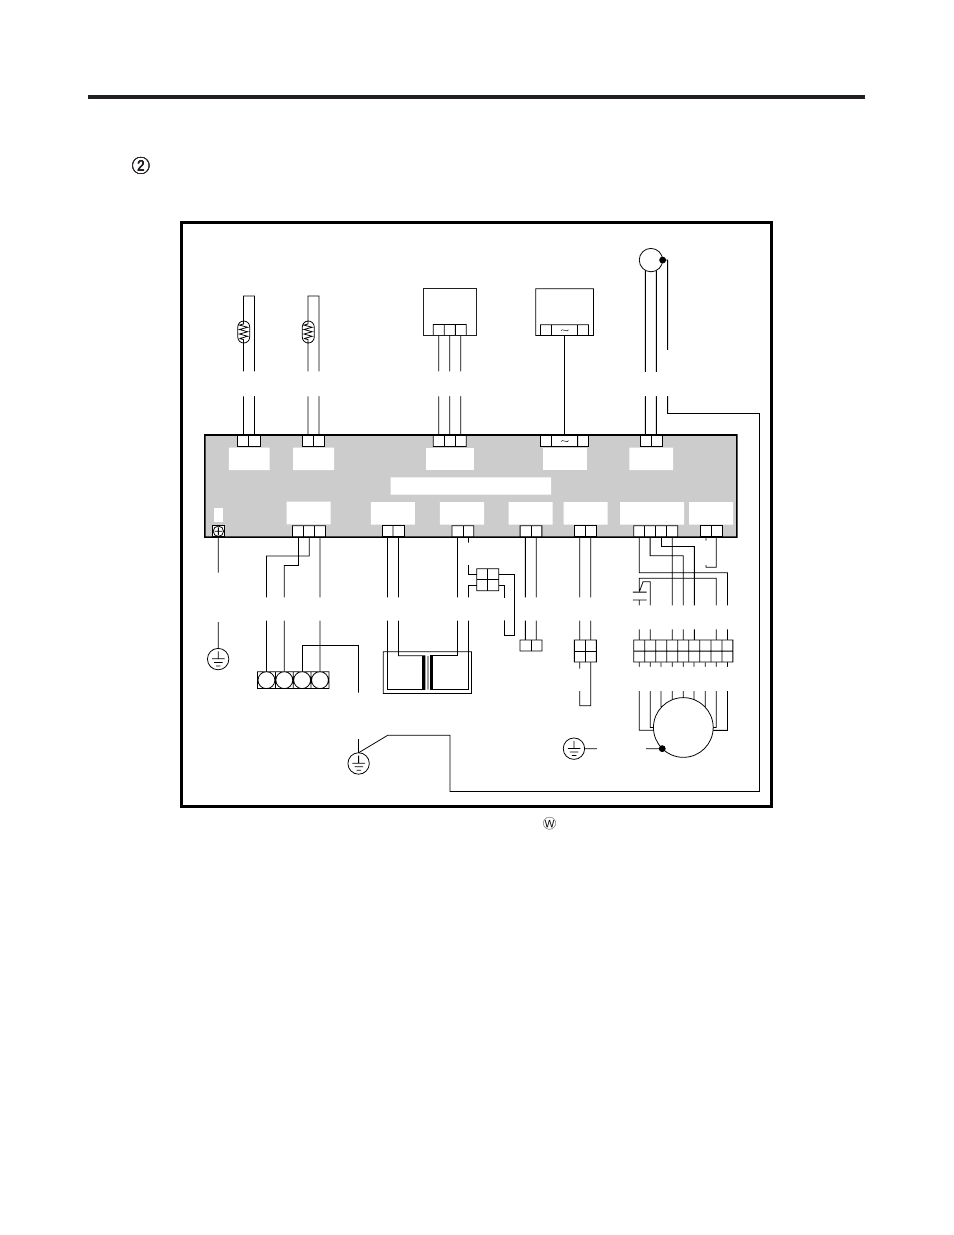 Biljax 4232 Wiring Diagram